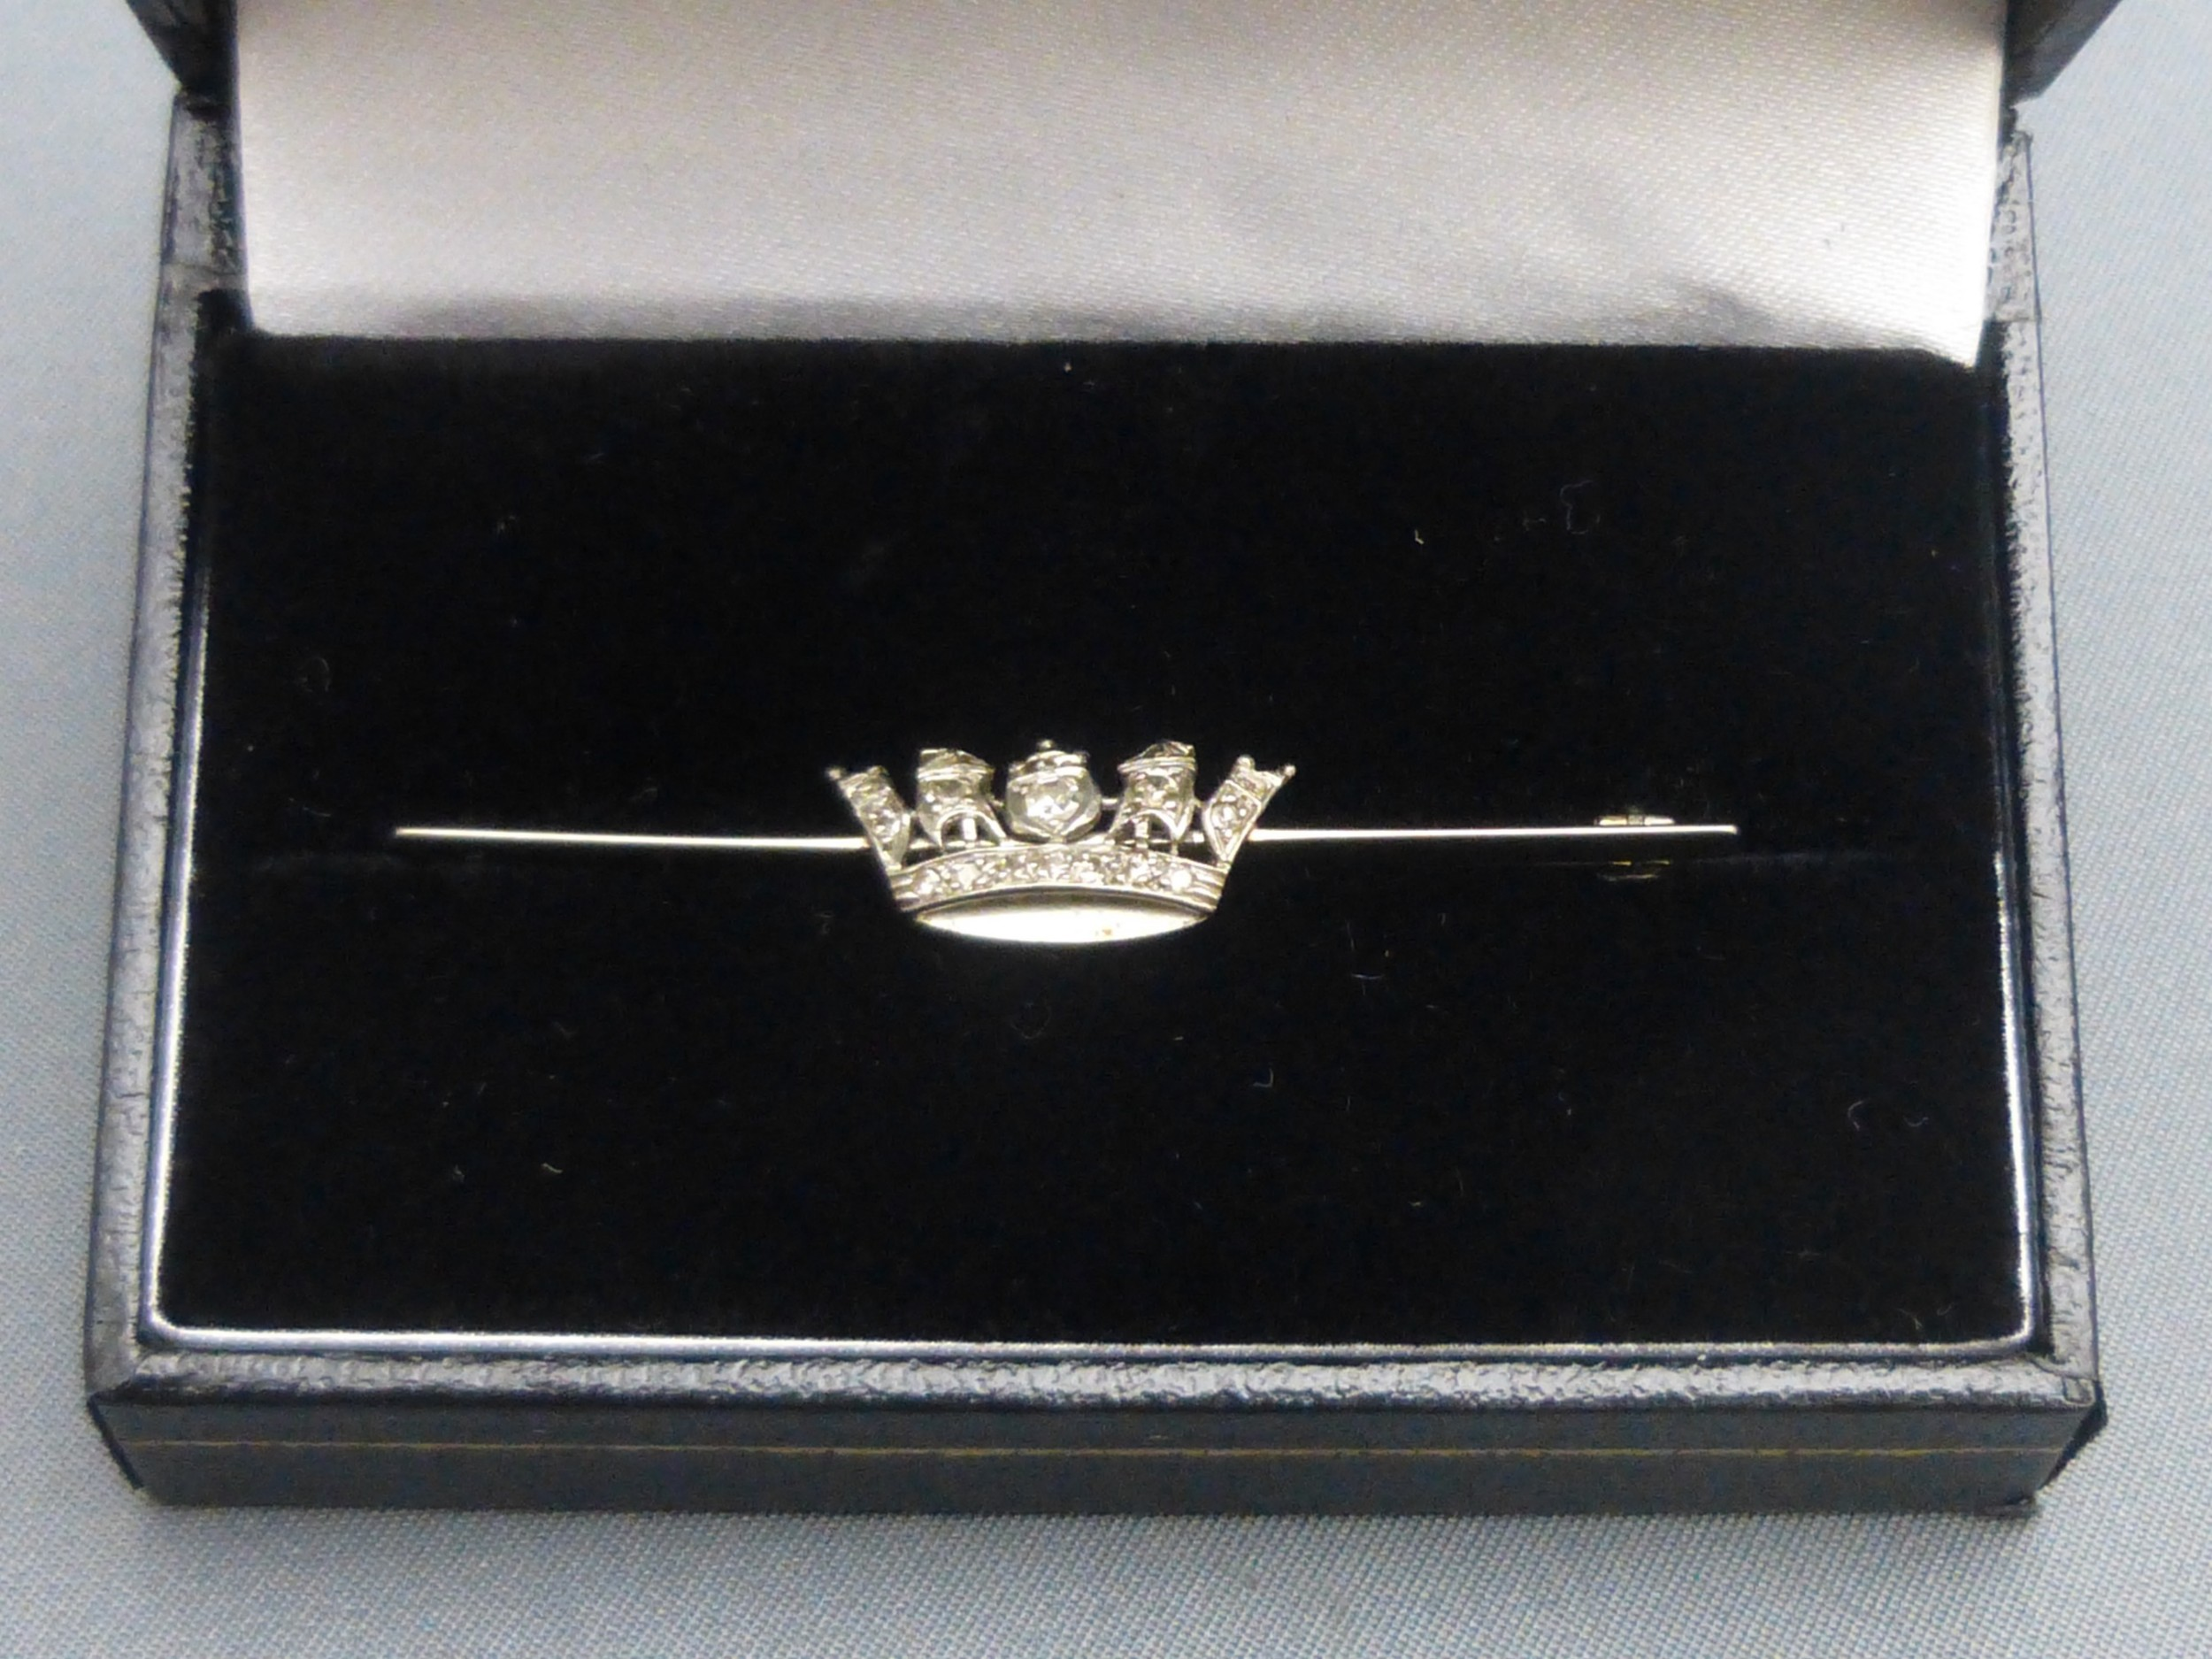 1930s 18ct white gold and diamond naval crown brooch